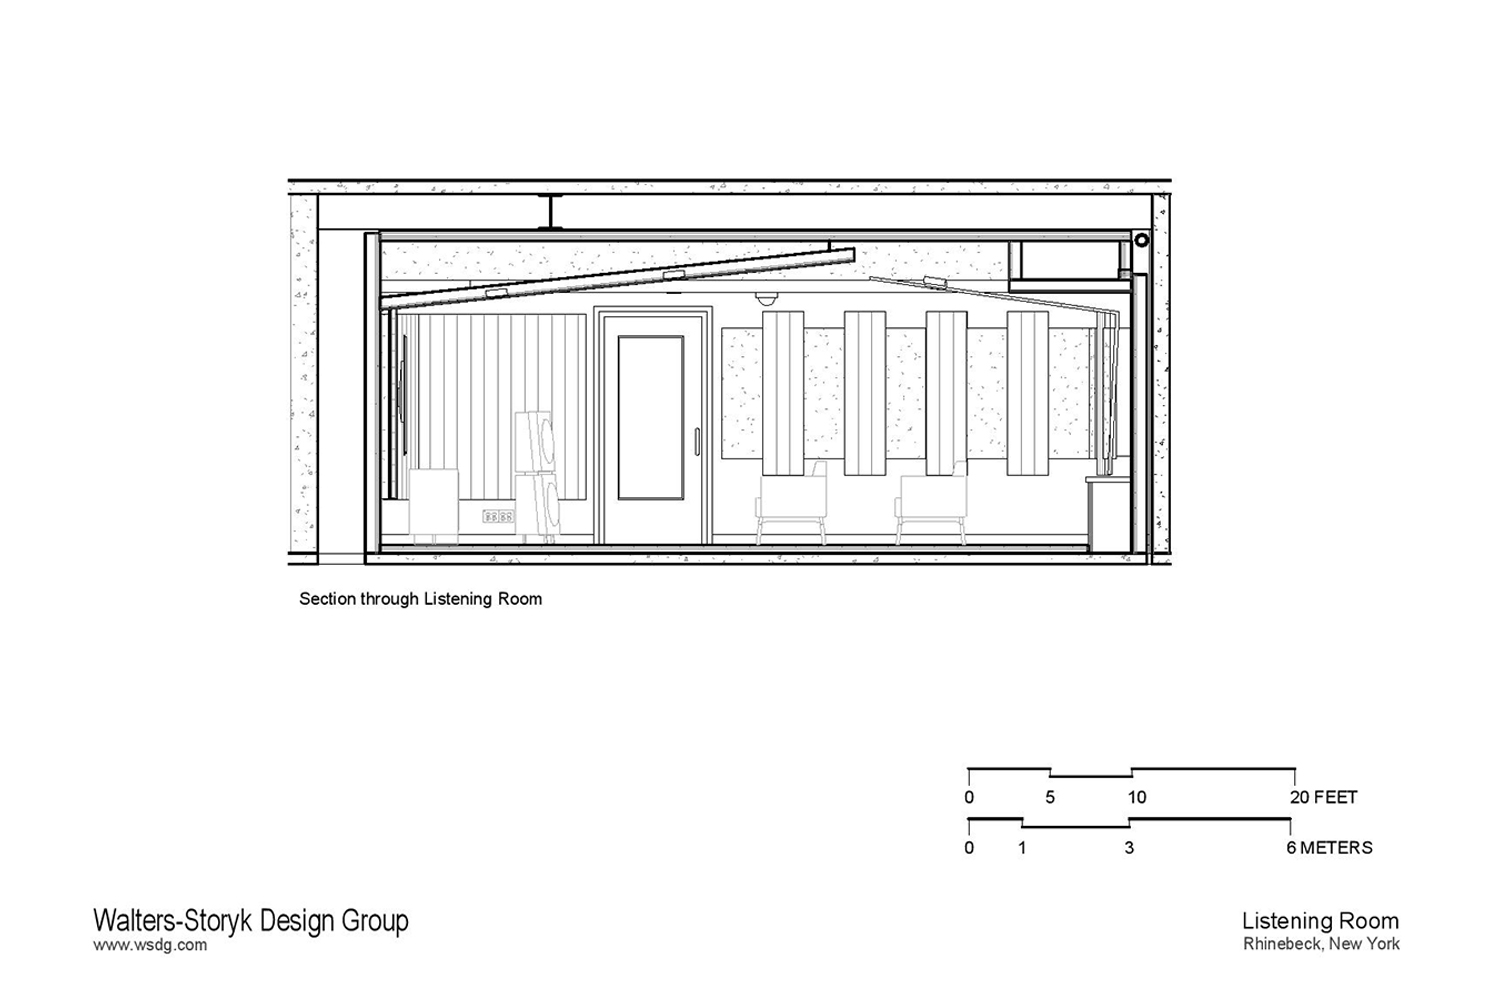 Luxury minimalistic audiophile listening room in a private residence in upstate New York. Acoustic isolation and A/V Systems design by WSDG. Drawing section.